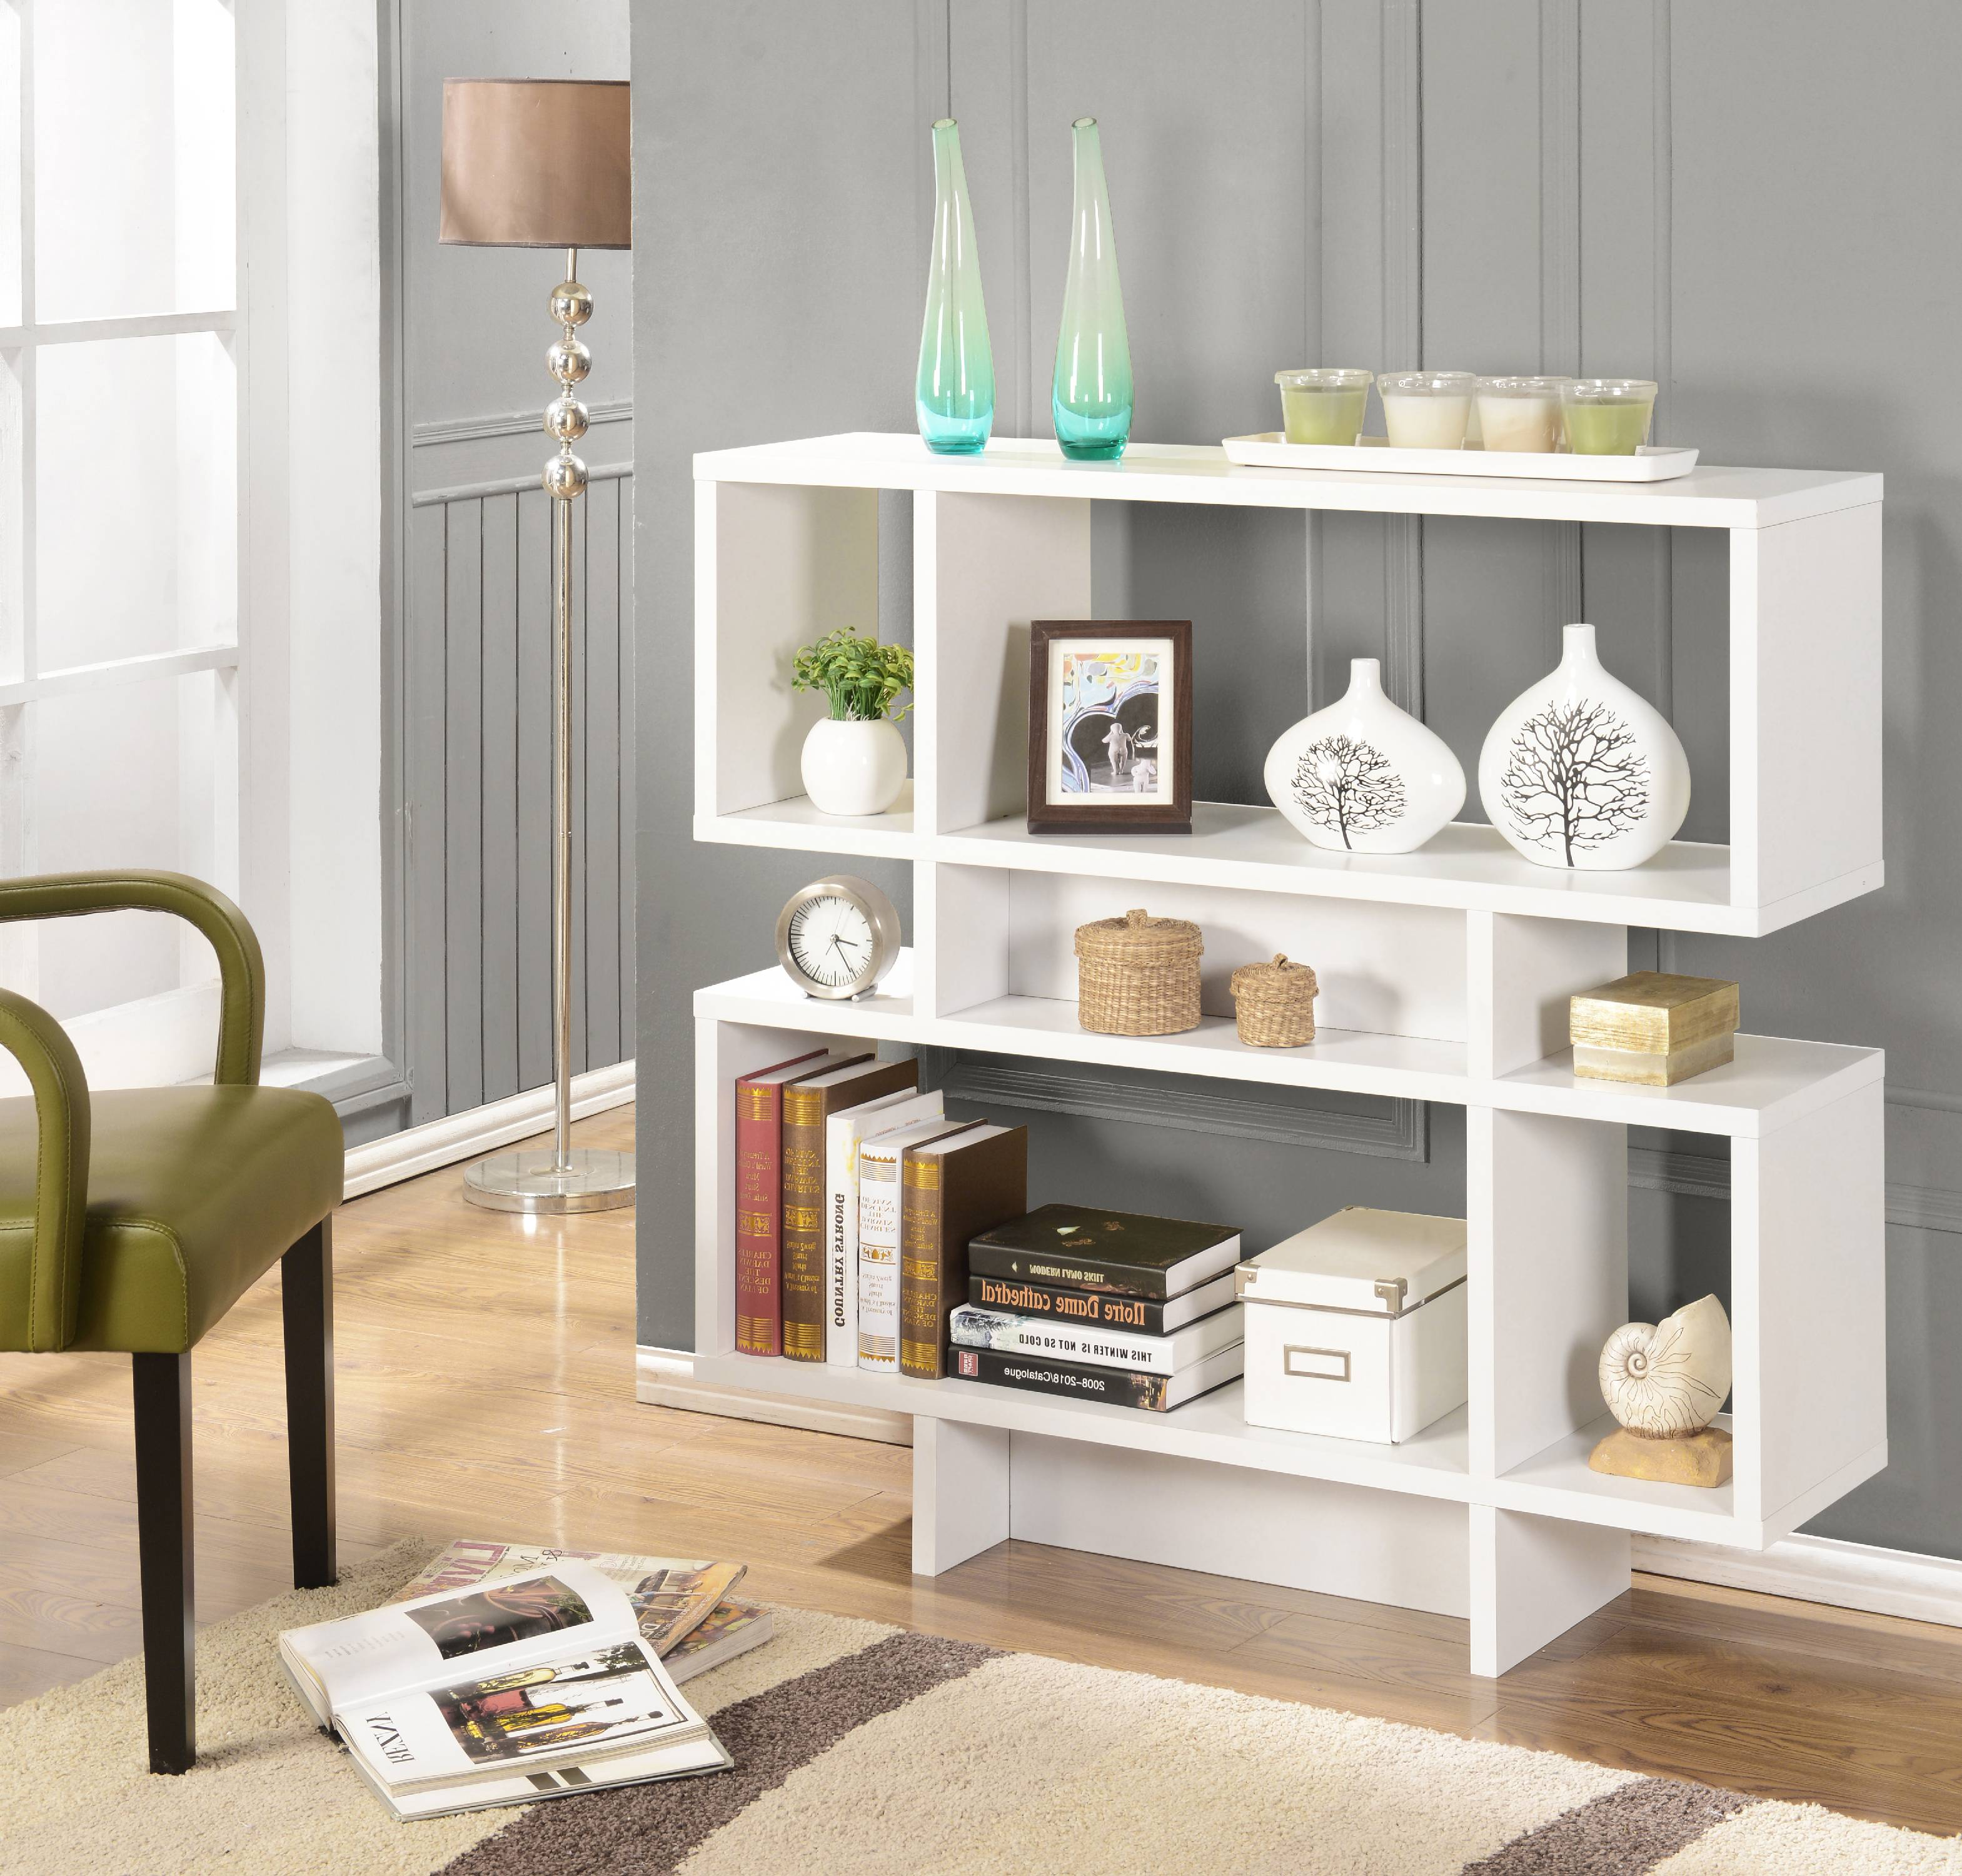 Elsie White Wood 7 Cube 3 Tier Bookcase Display Shelves Cabinet For Home & Office